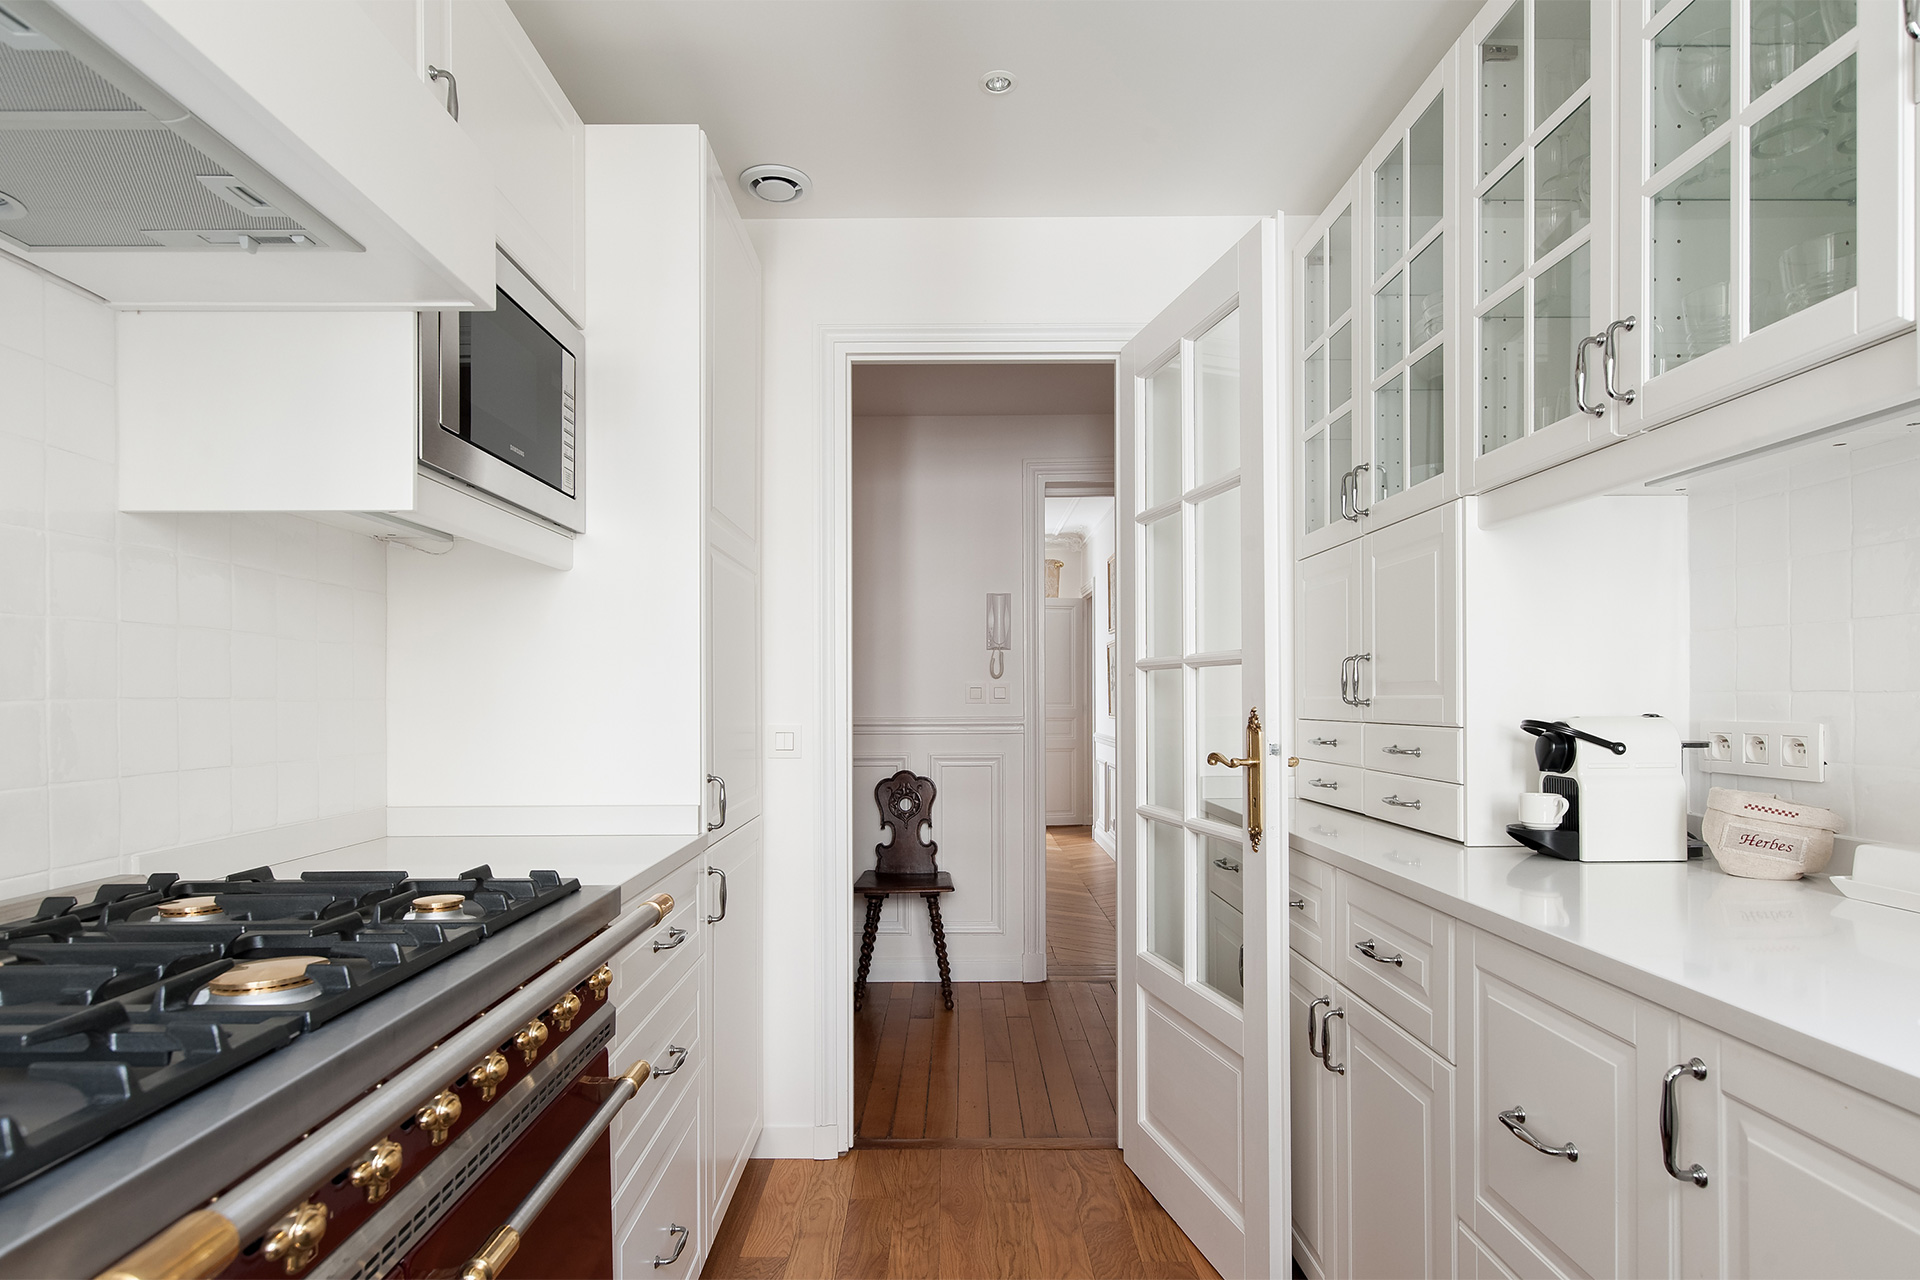 Kitchen is light-filled, crisp and beautiful in the Montagny vacation rental offered by Paris Perfect